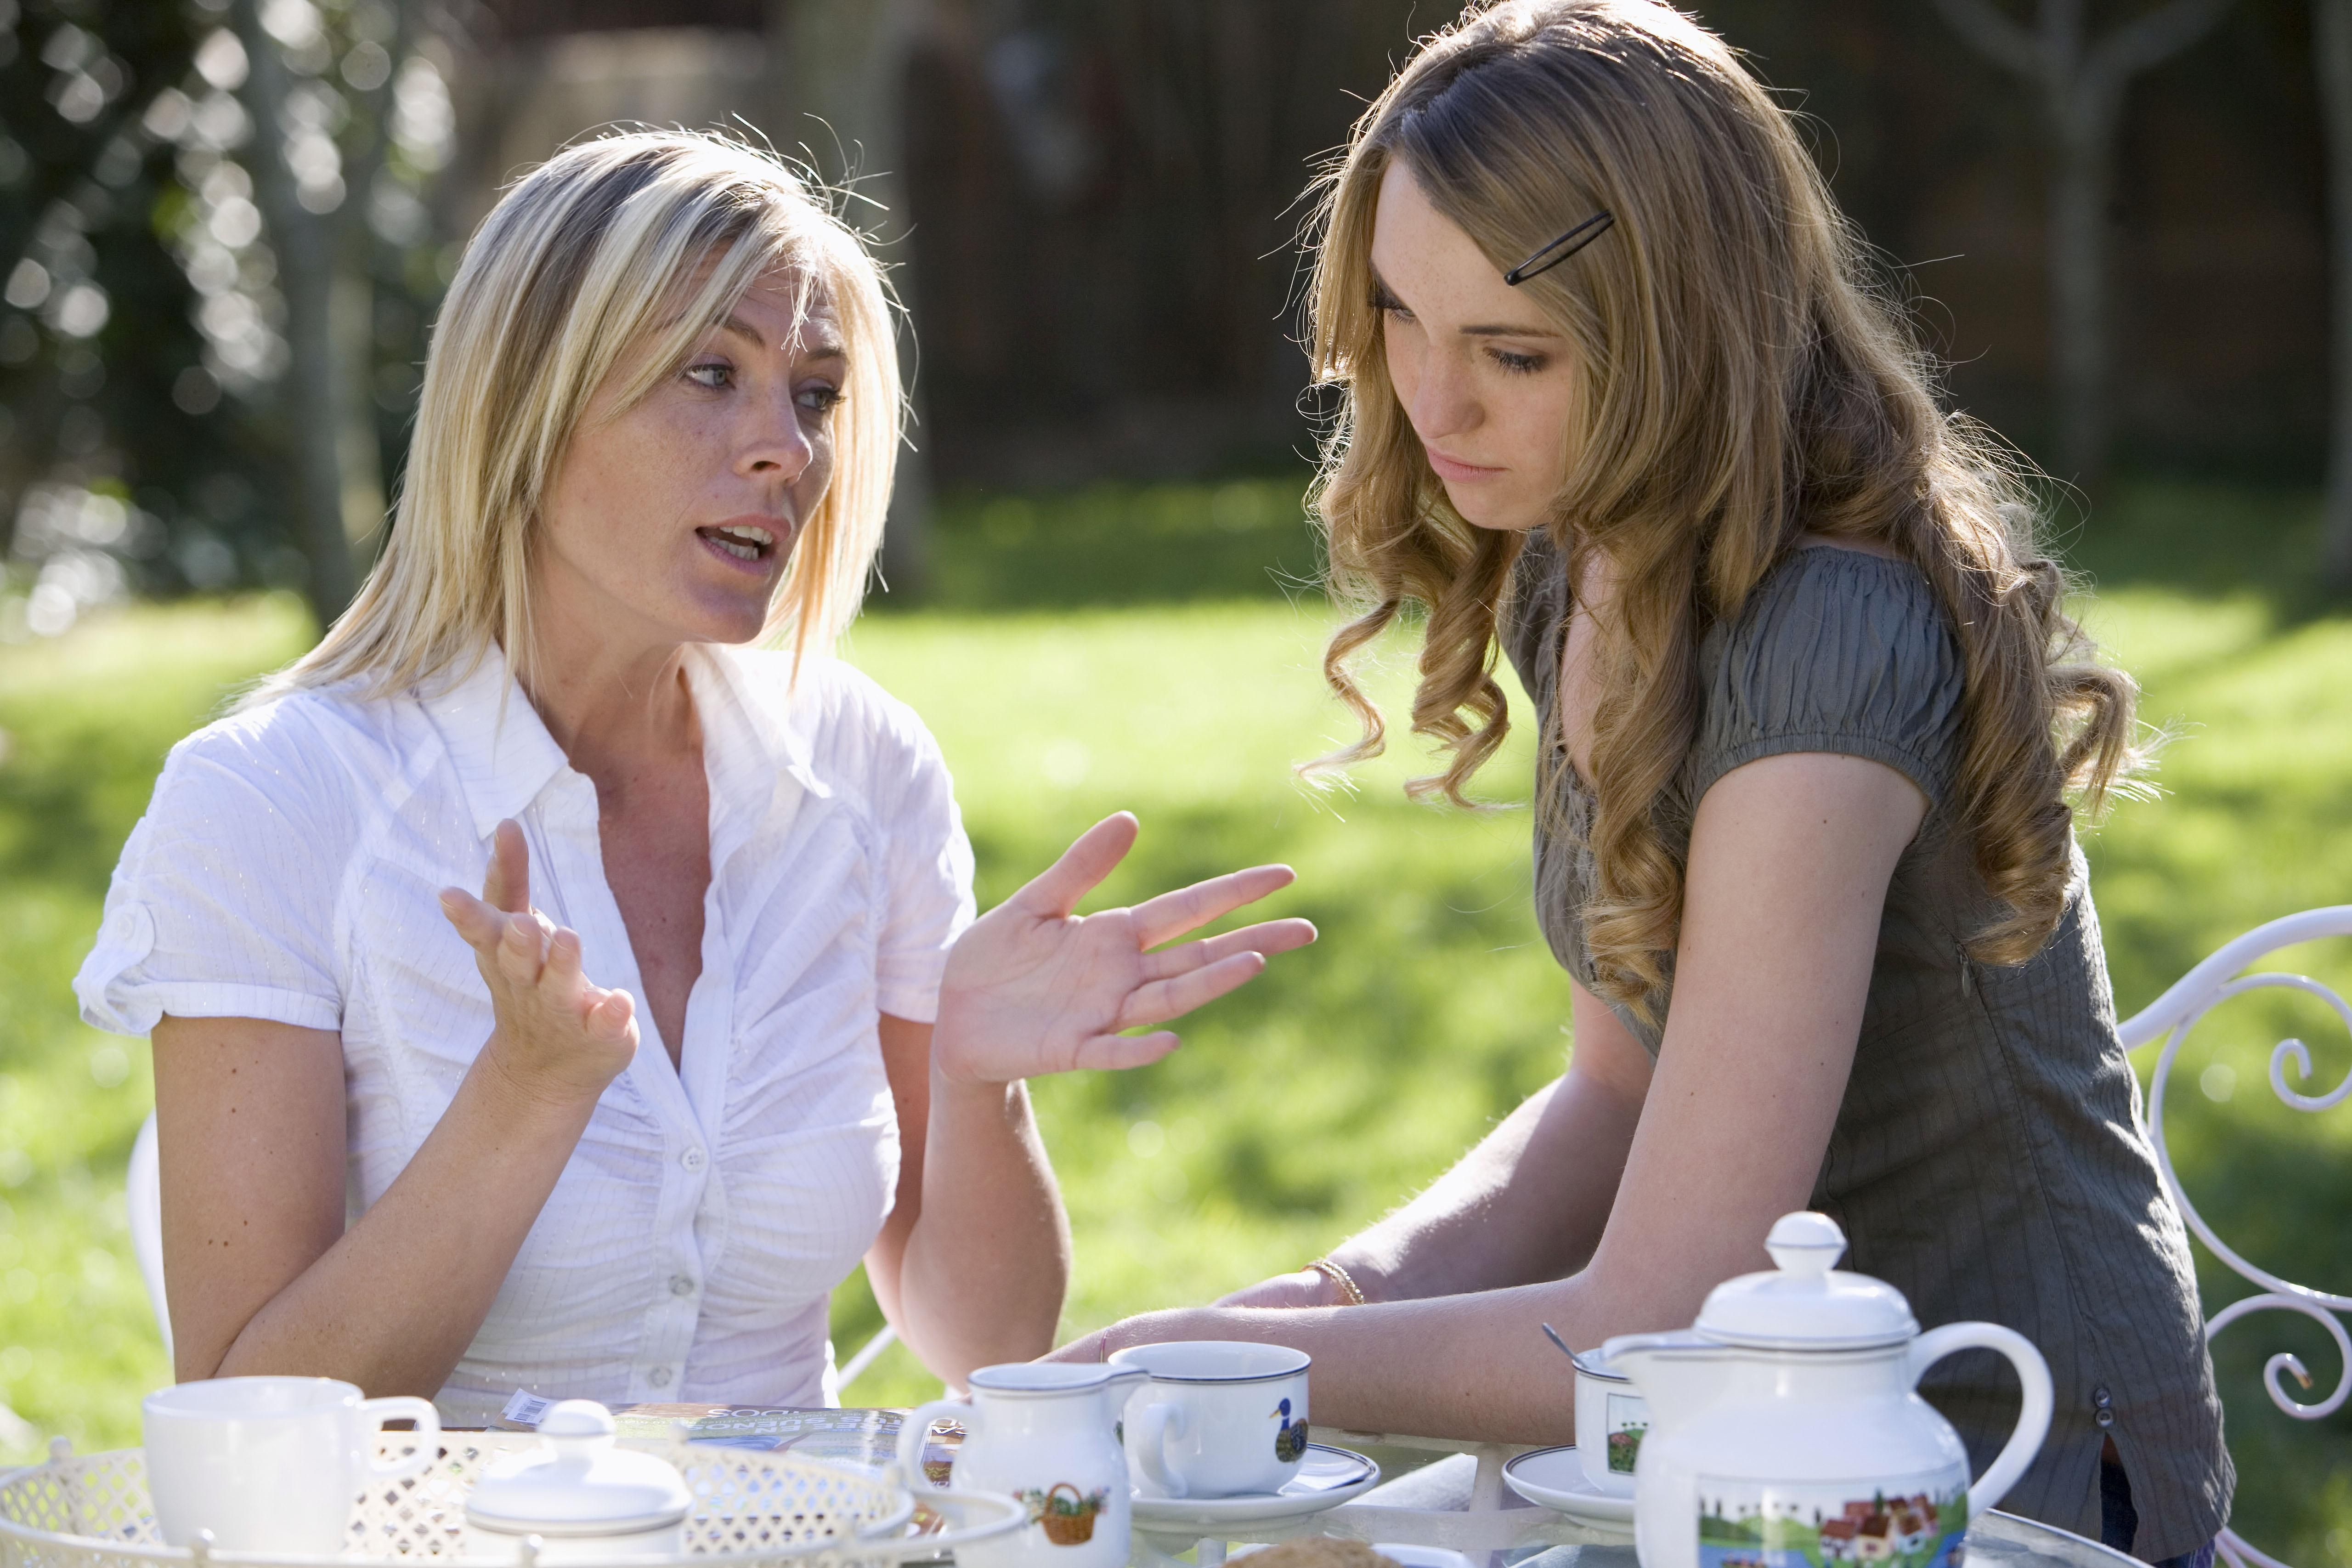 Good Manners Every Teen Should Know